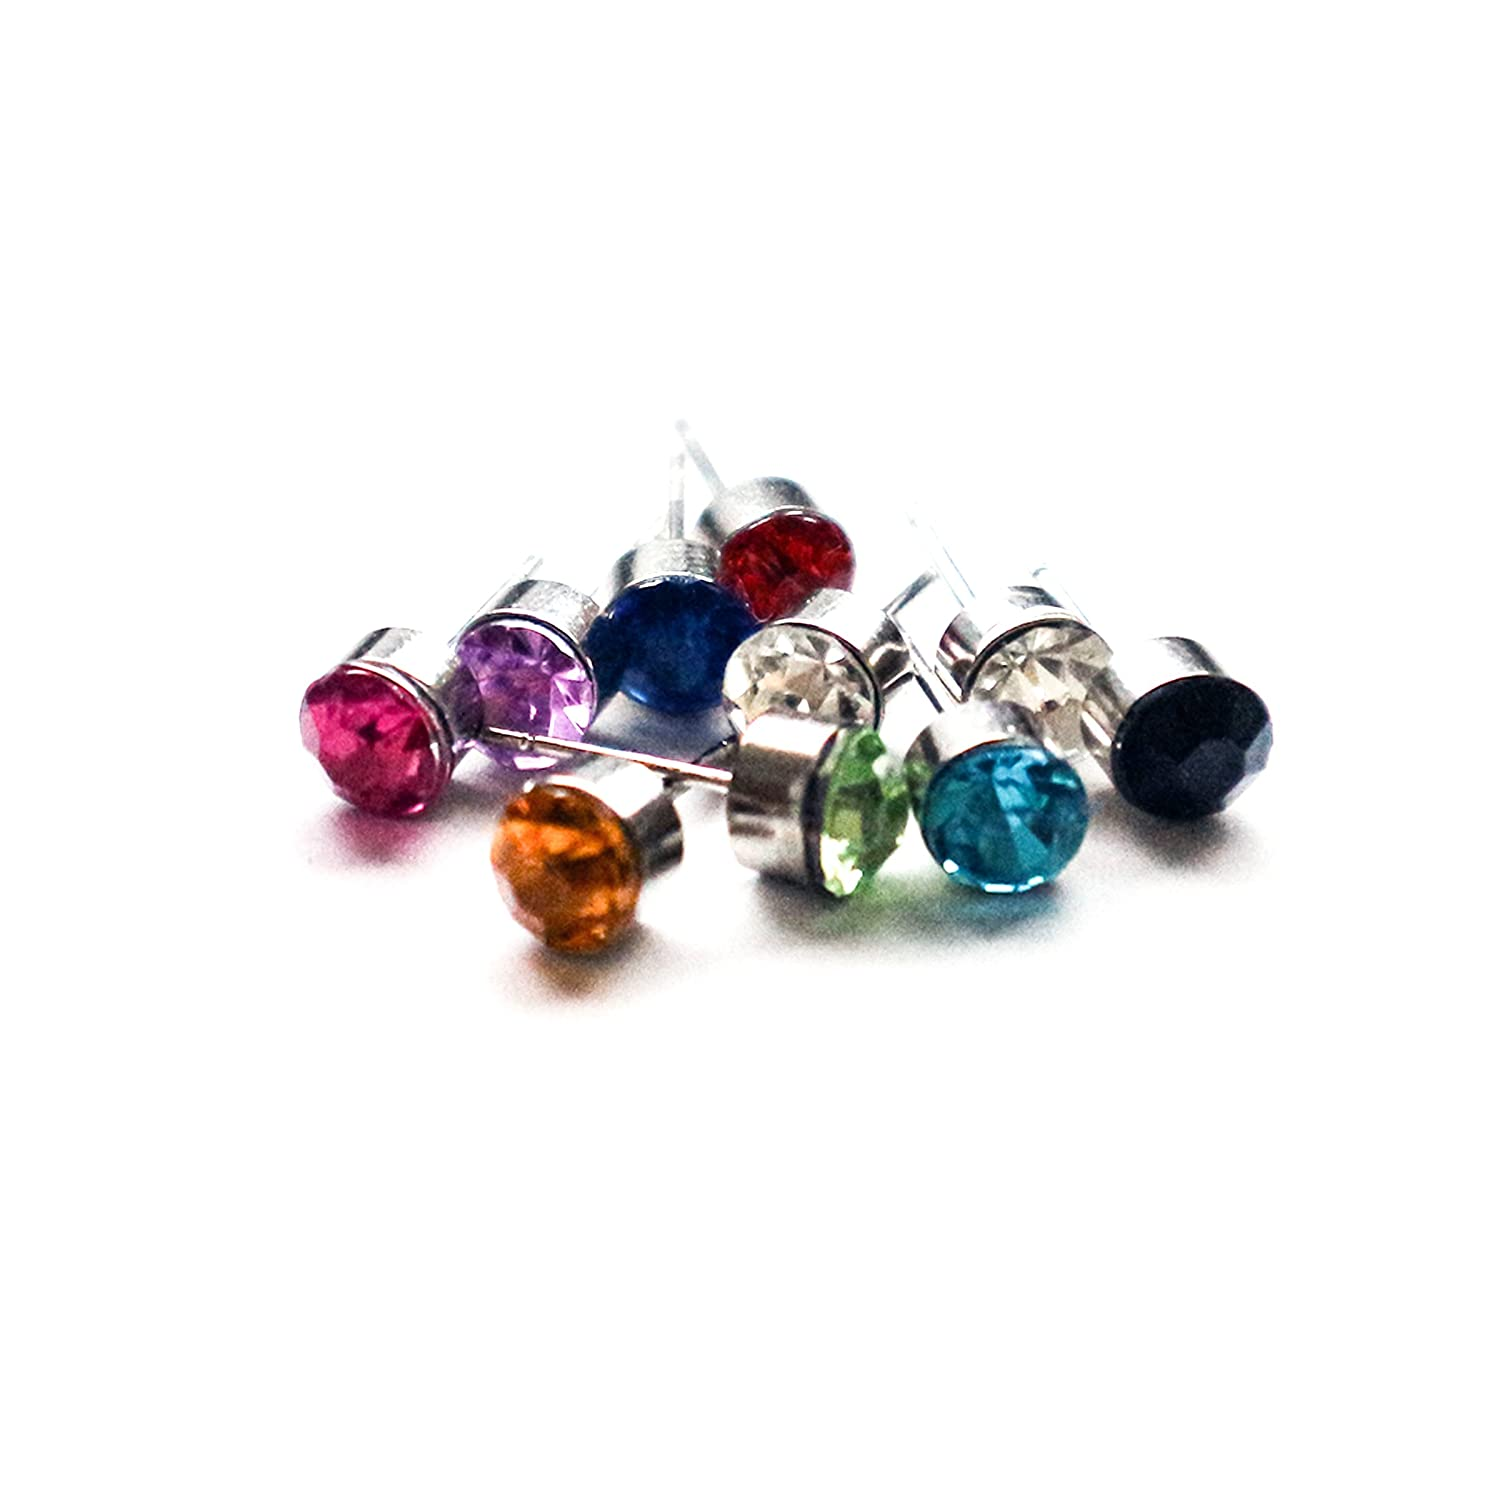 Stud Earrings by Kurtzy 20 Pairs of 3mm Stud Head and 1 5cm Long